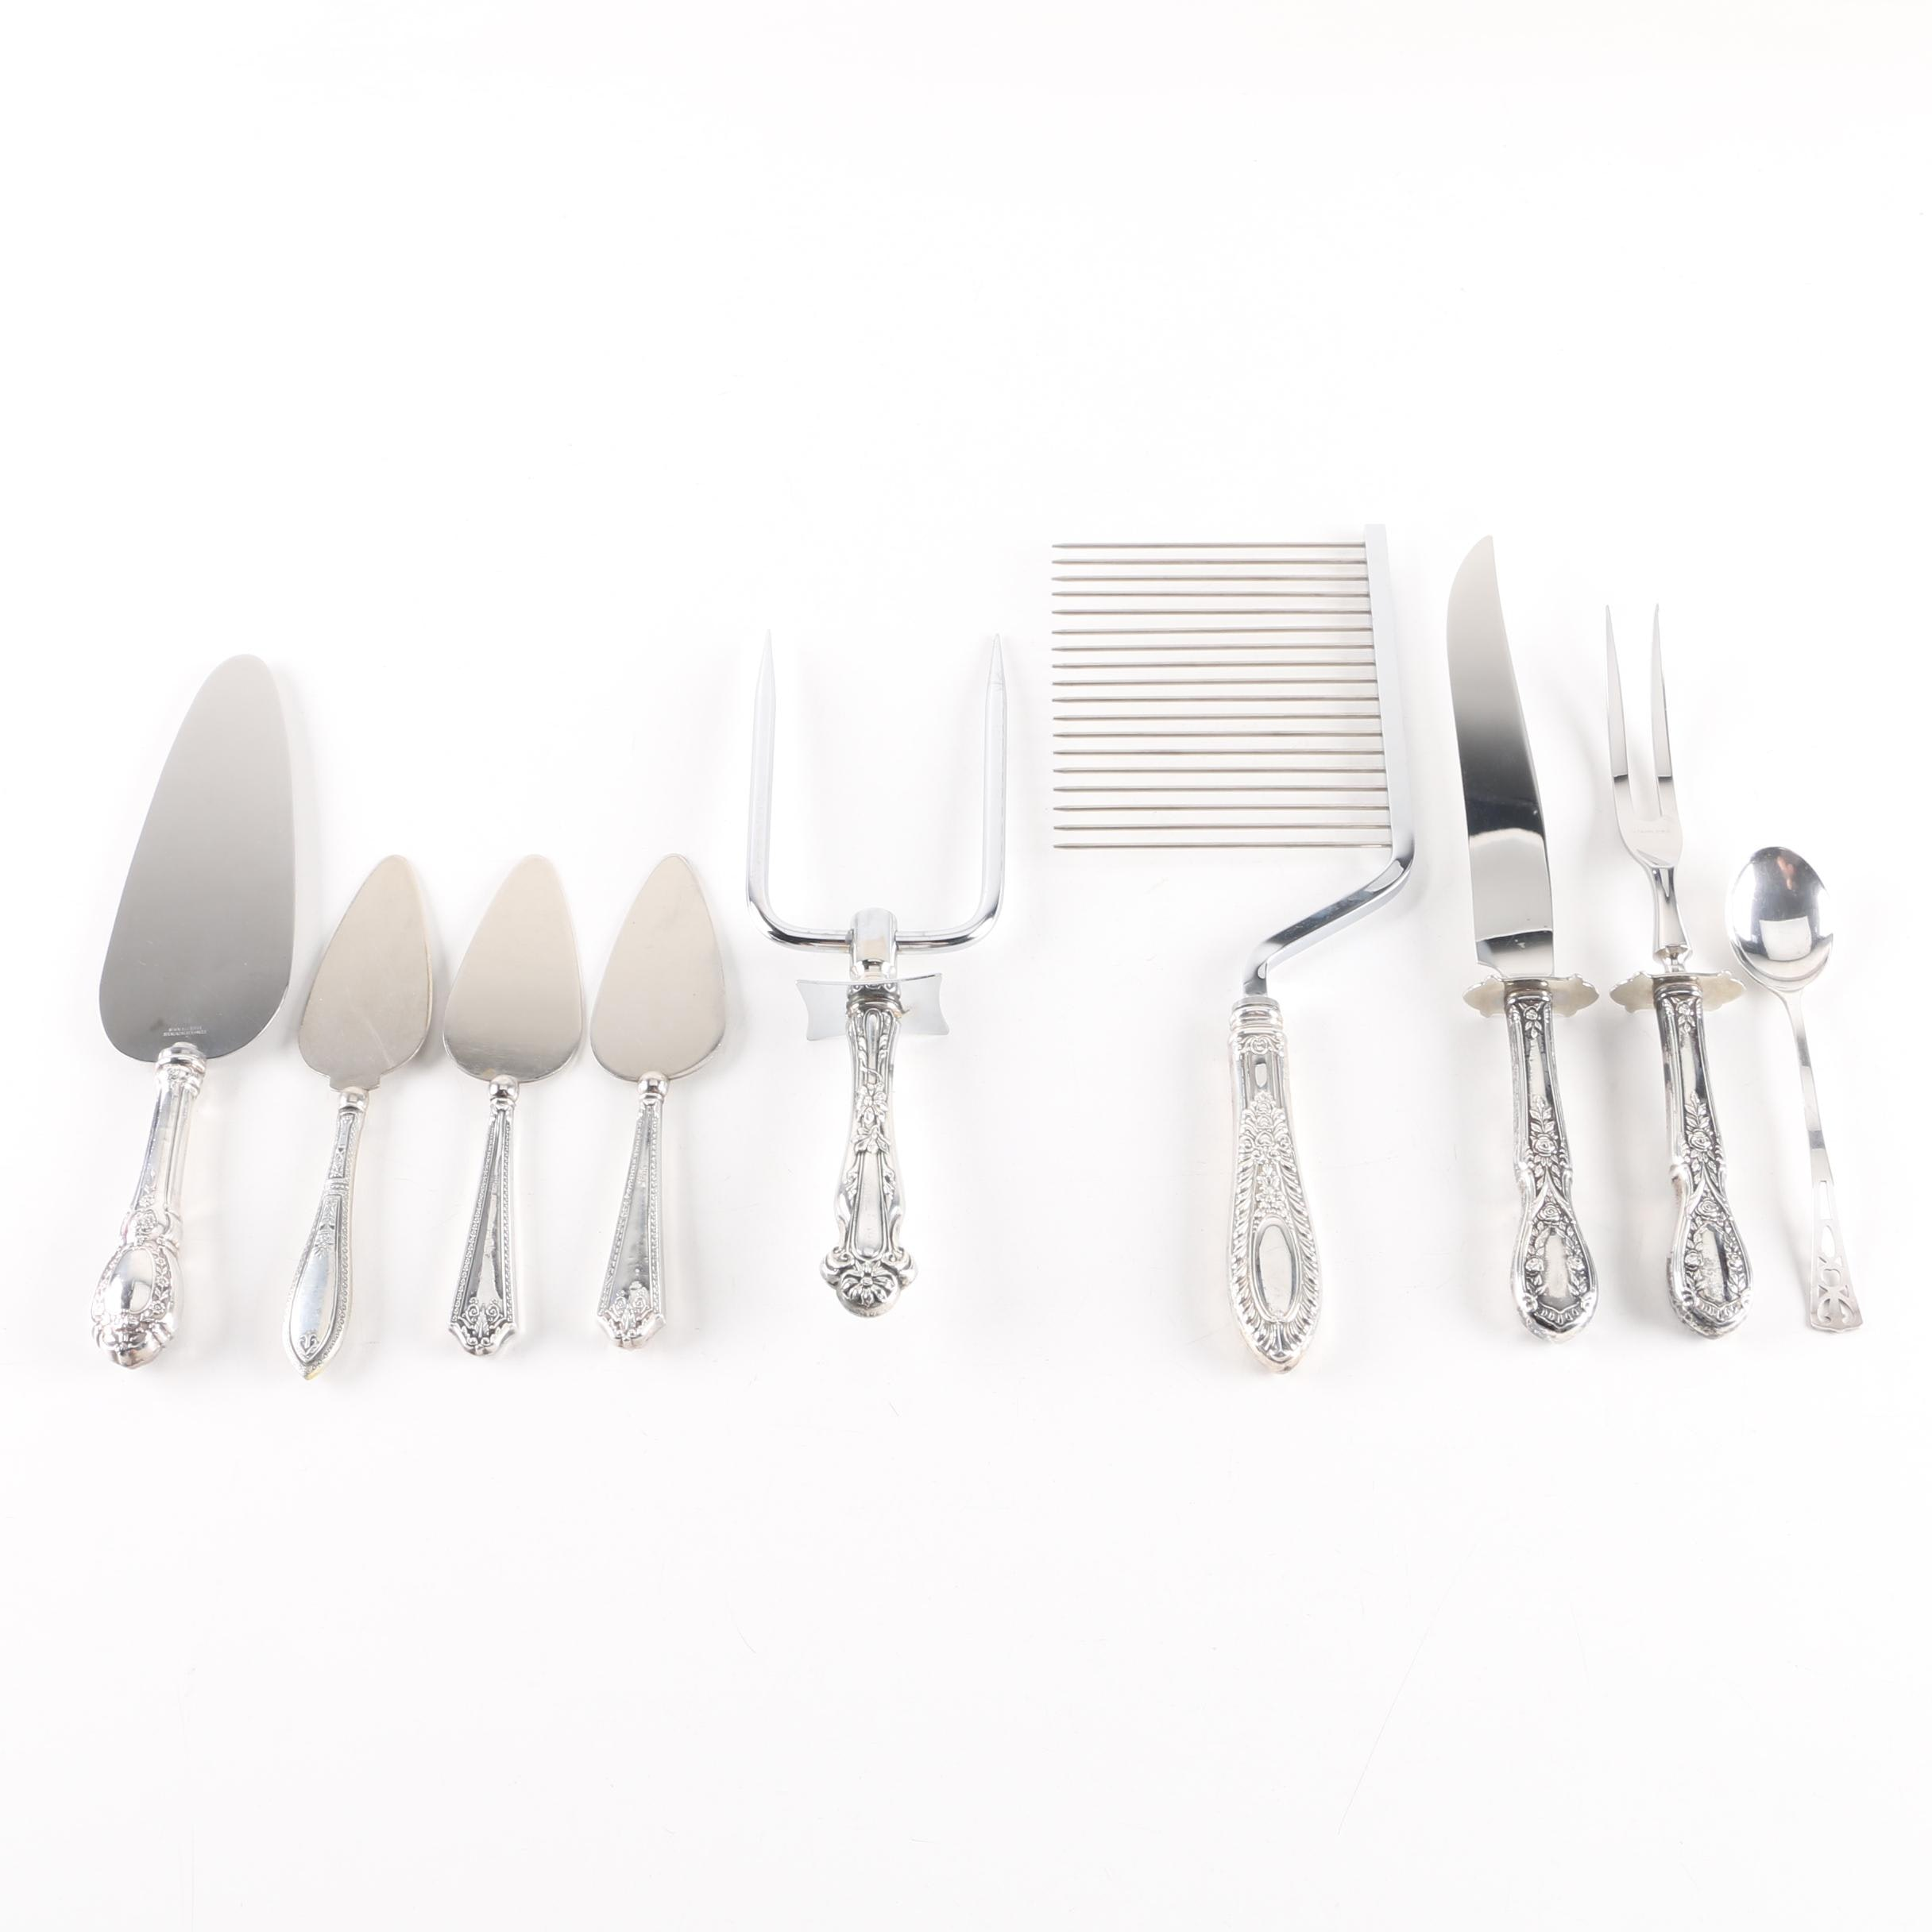 """Manchester """"American Beauty"""" Carving Set and Other Sterling Serving Utensils"""